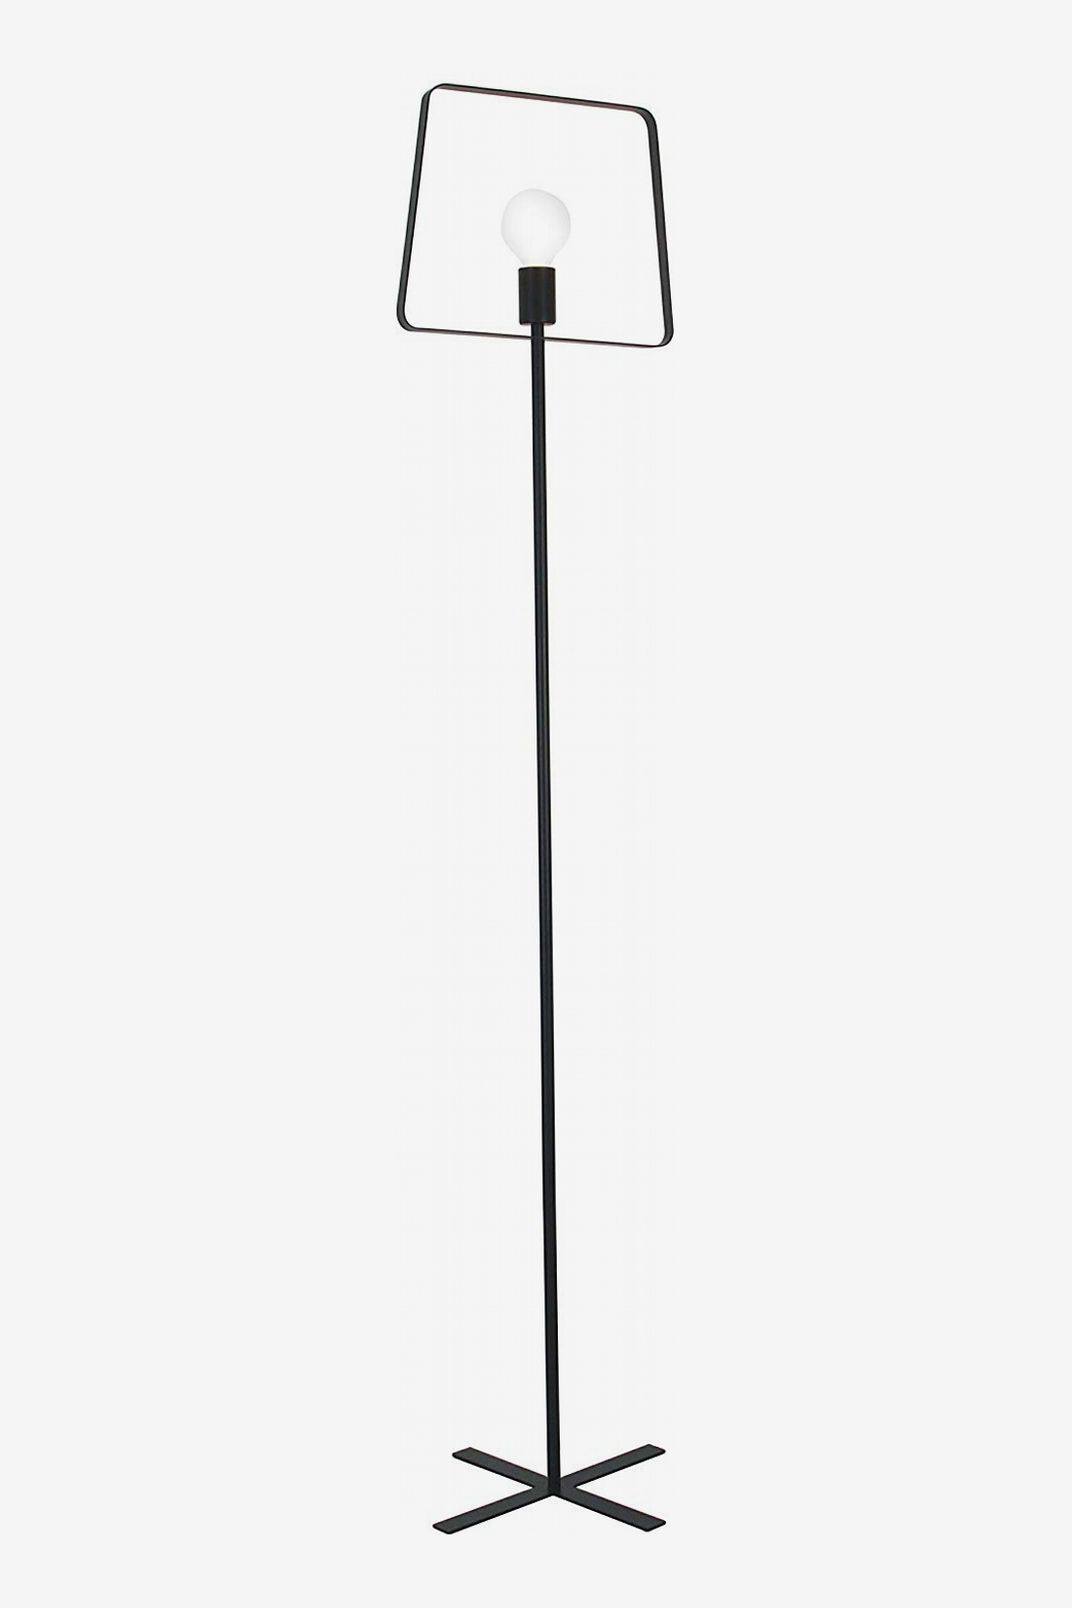 La Jolie Muse Black Industrial Design Uplight Lamp